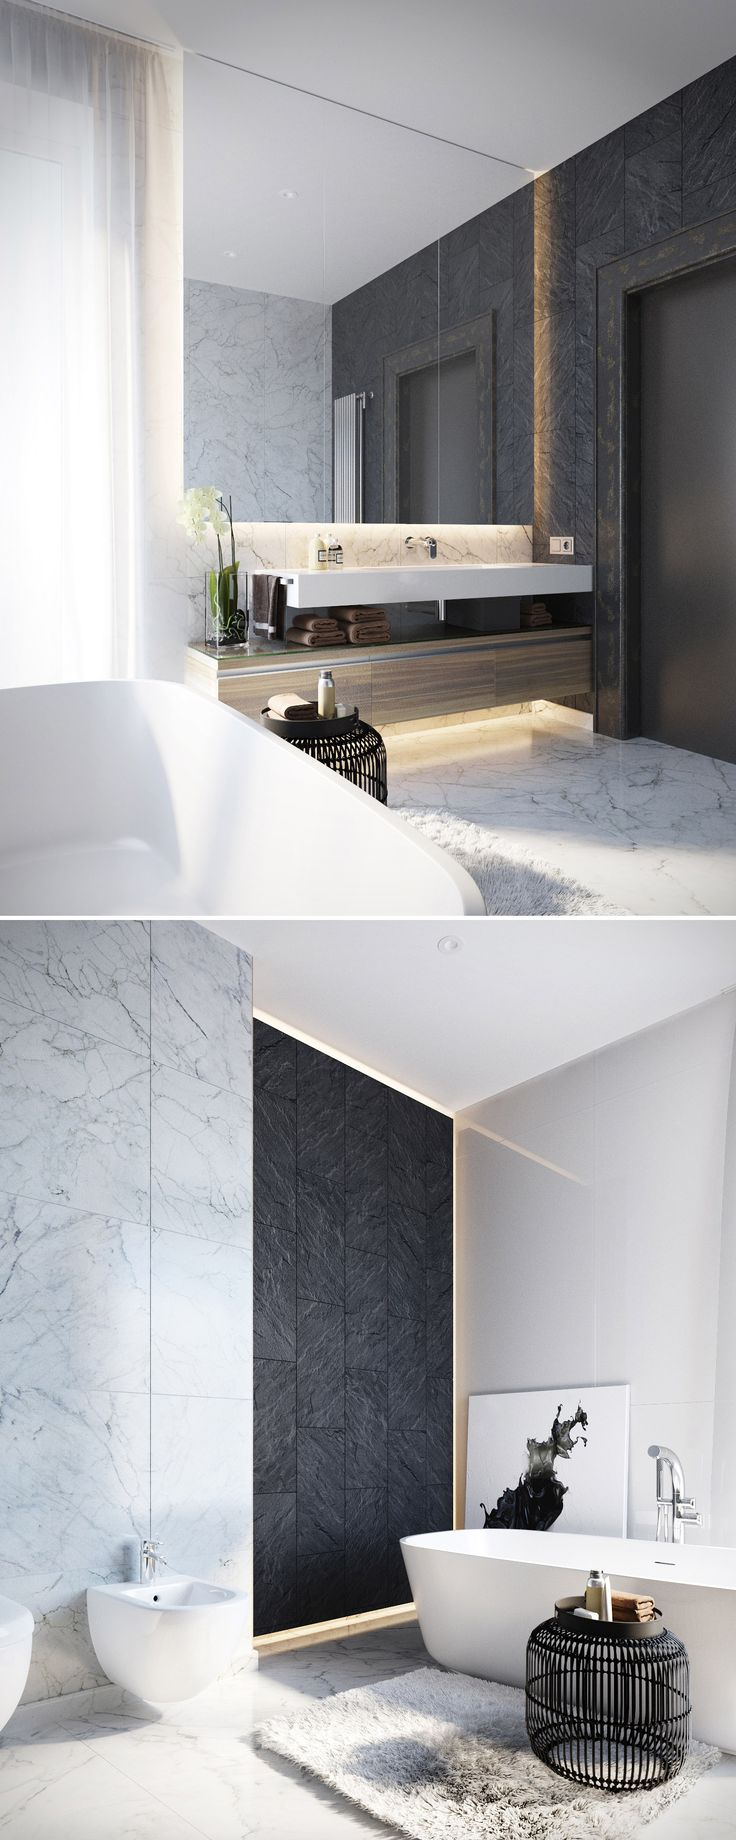 Nice colors. Instead of rug, river stones surrounding the tub.